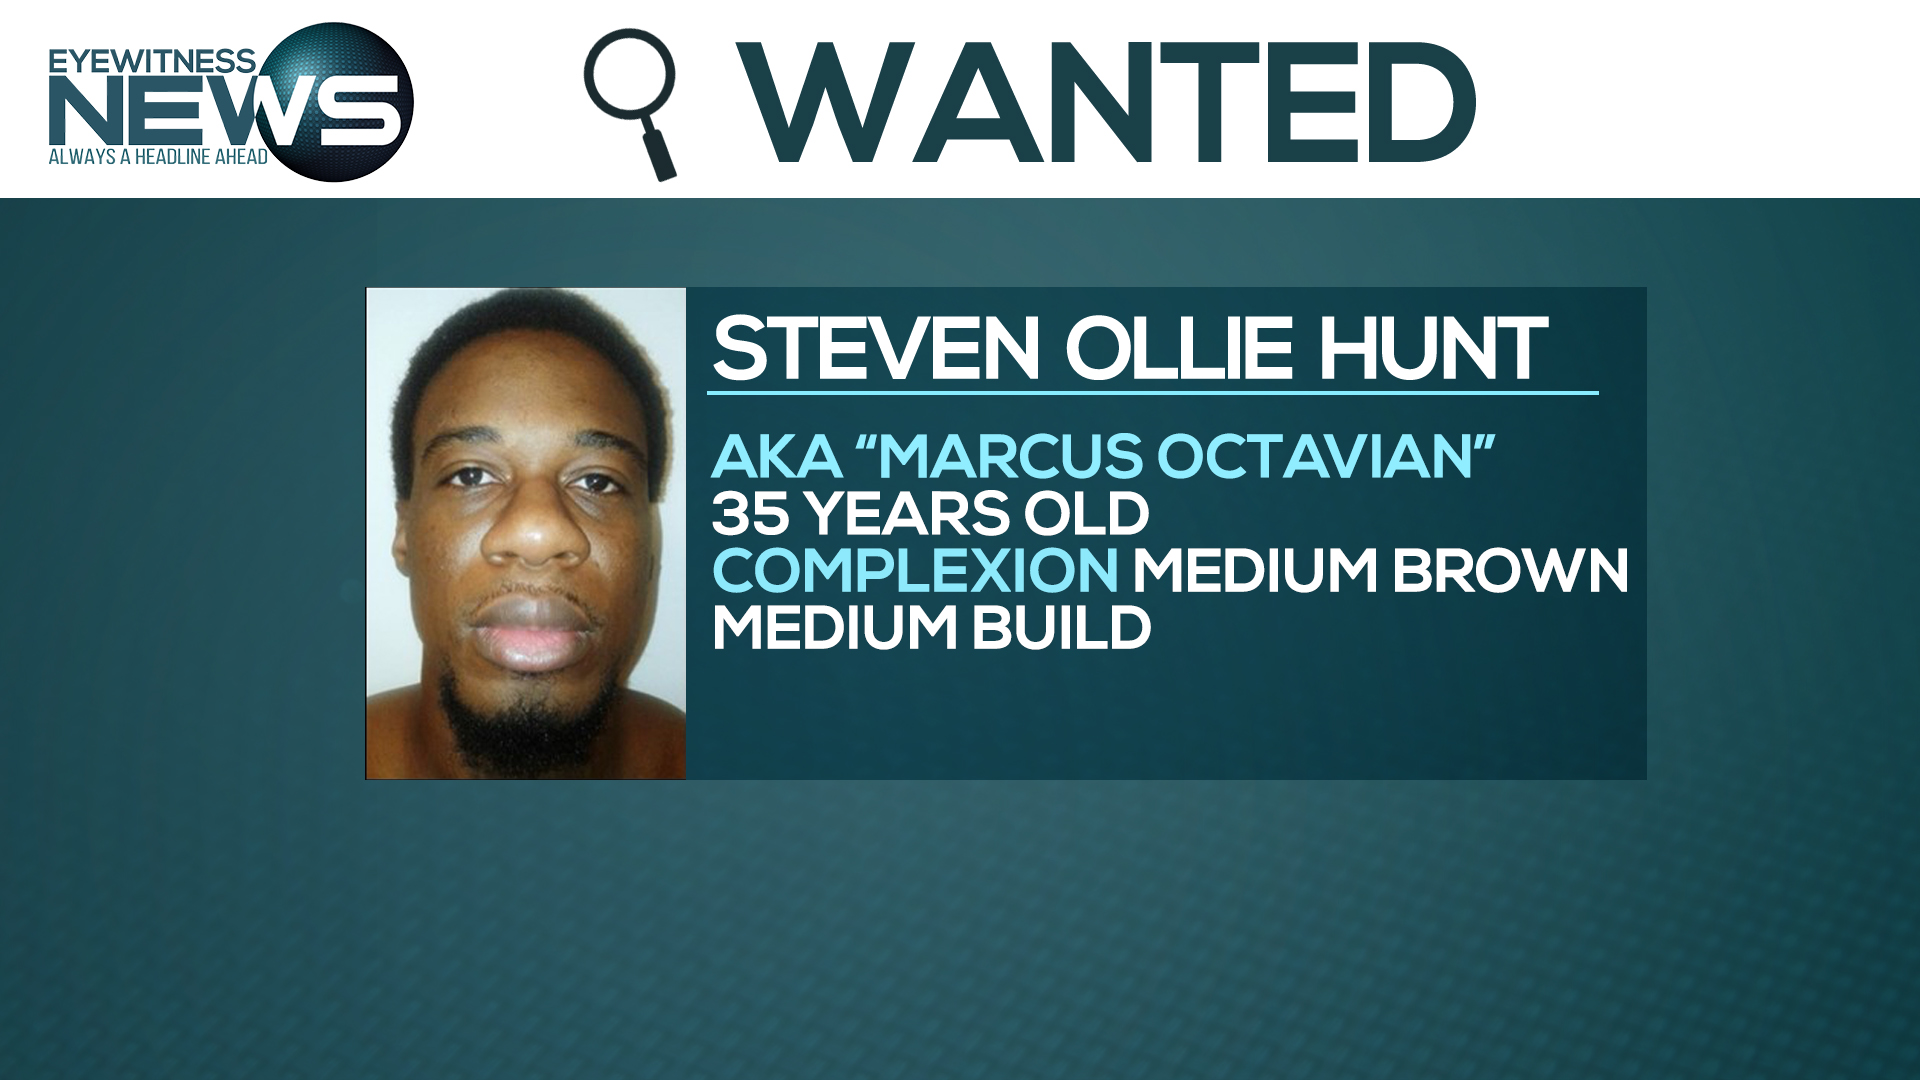 Police search for more wanted men